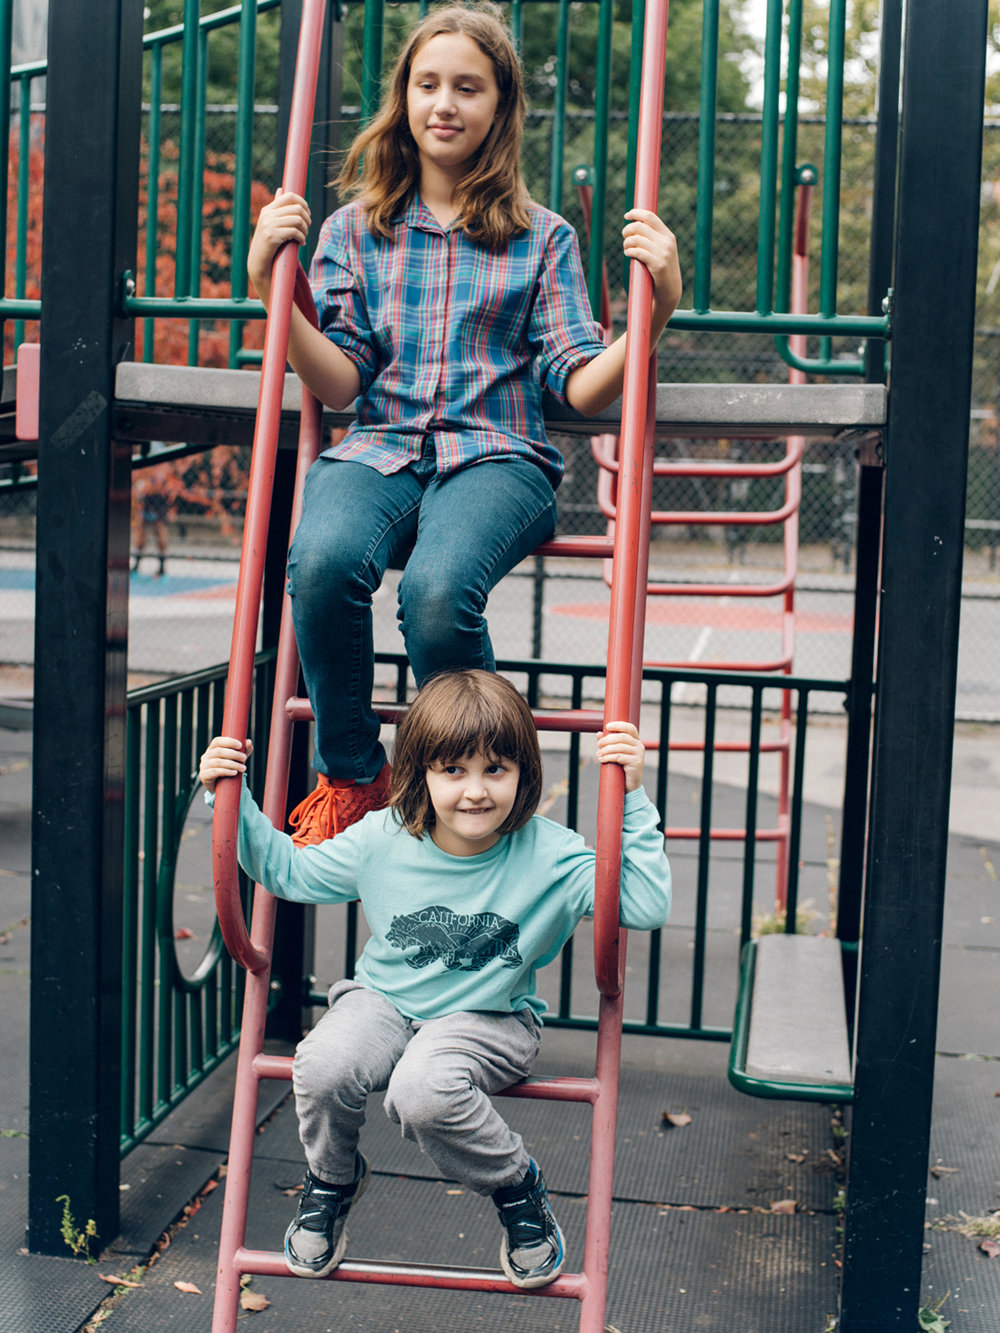 """Sean"",5, Transgender boy and his sister, NYC"